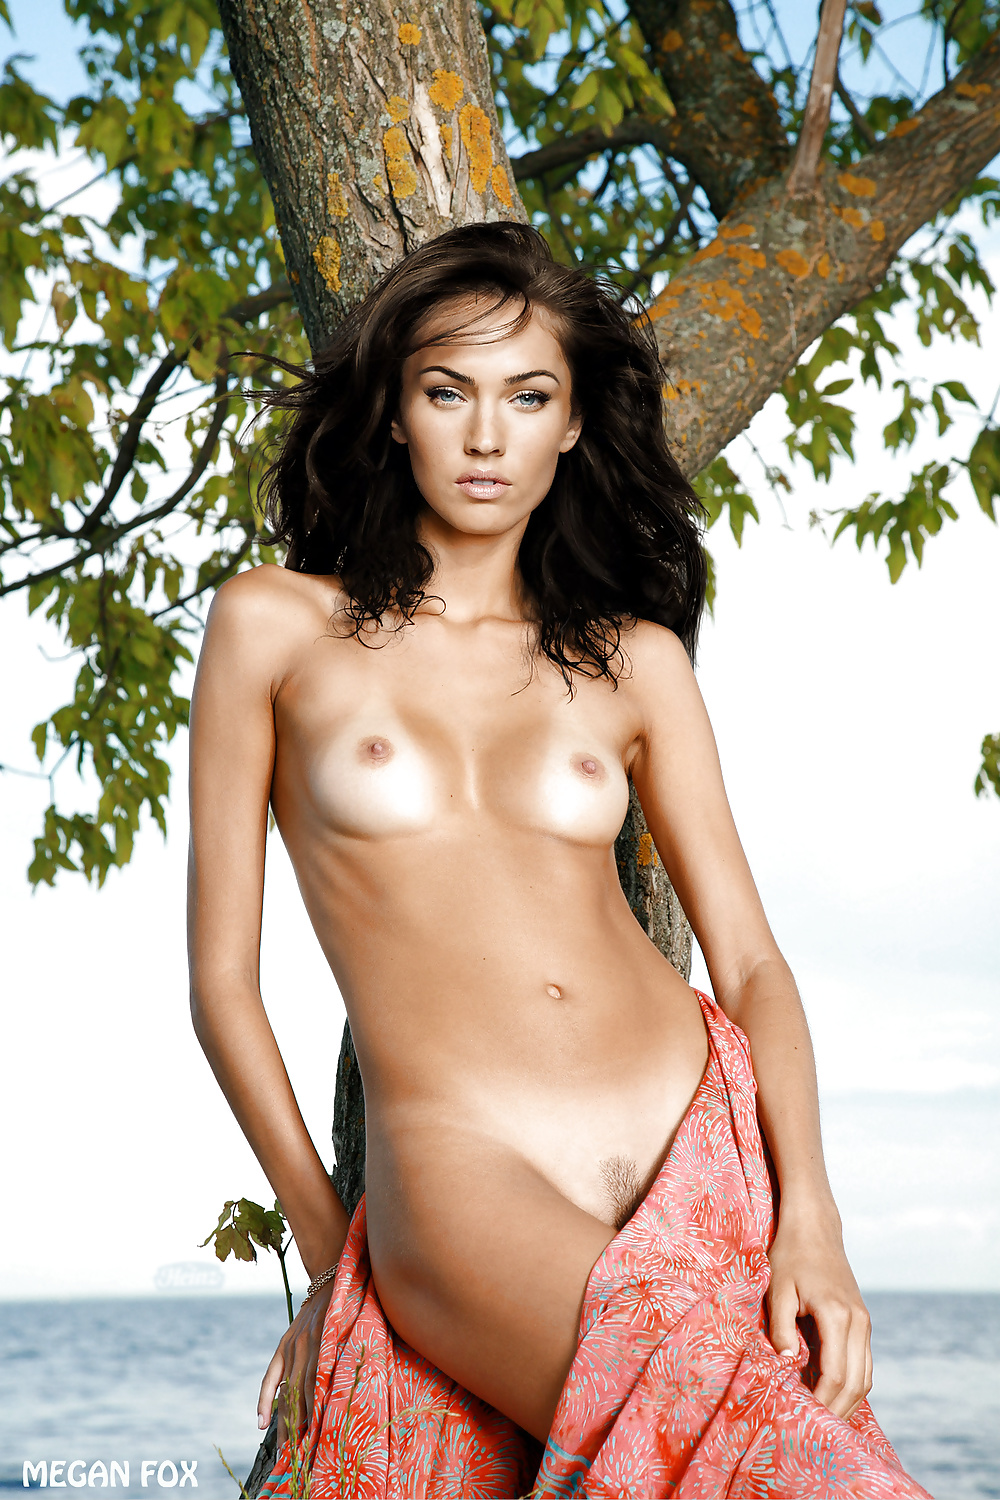 Naked pictures of megan fox-4604